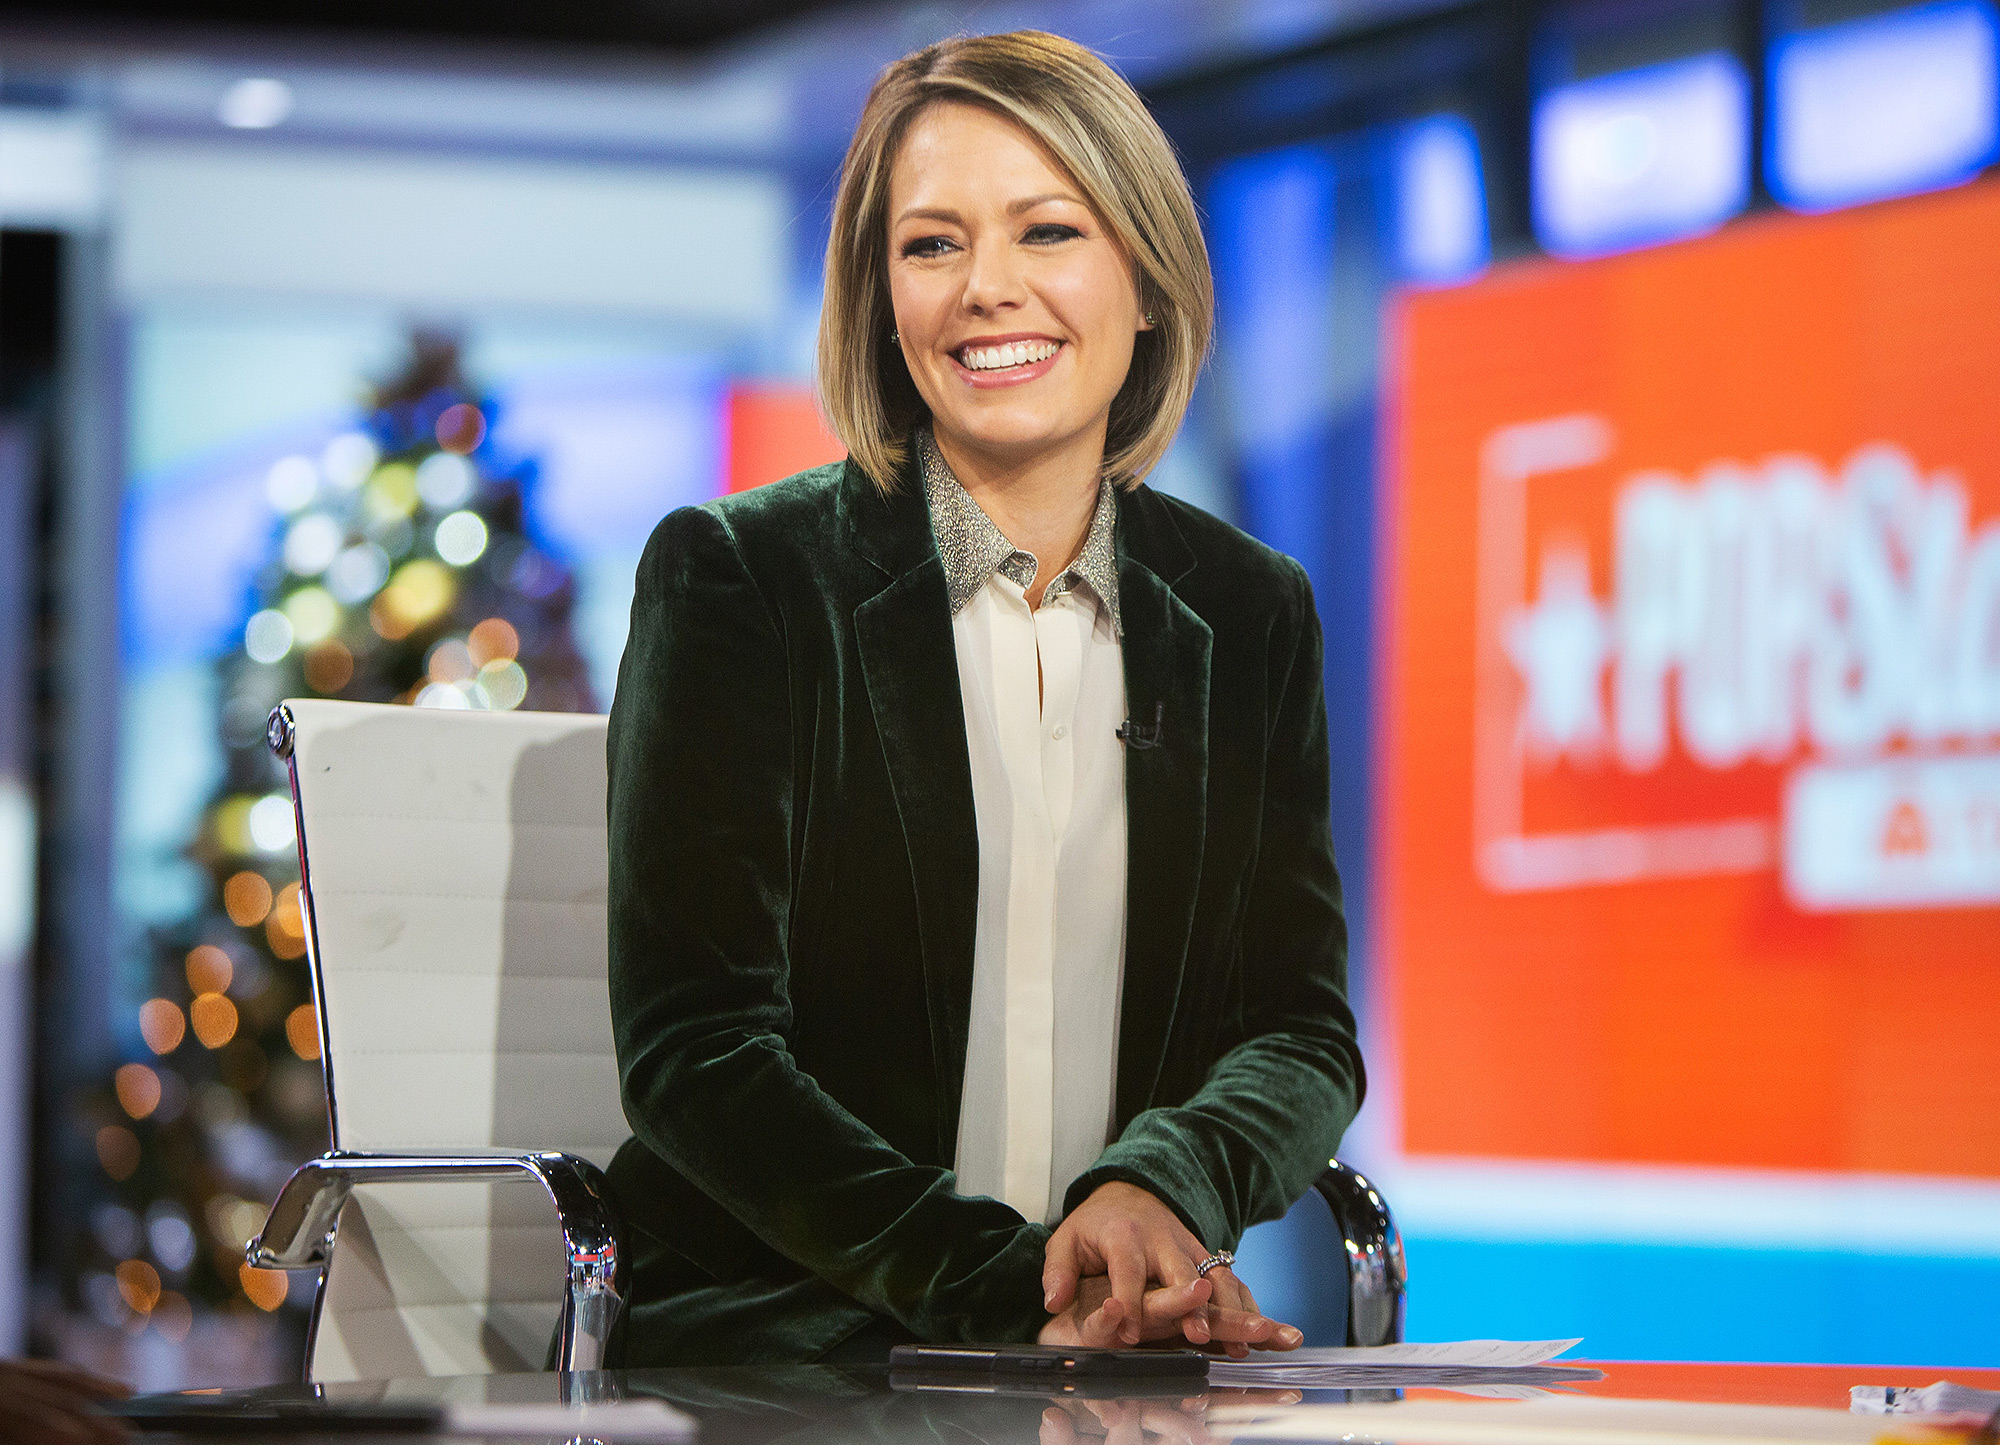 It'll Be a Boy for Pregnant Today Show Co-Anchor Dylan Dreyer: 'We Are All So Excited'